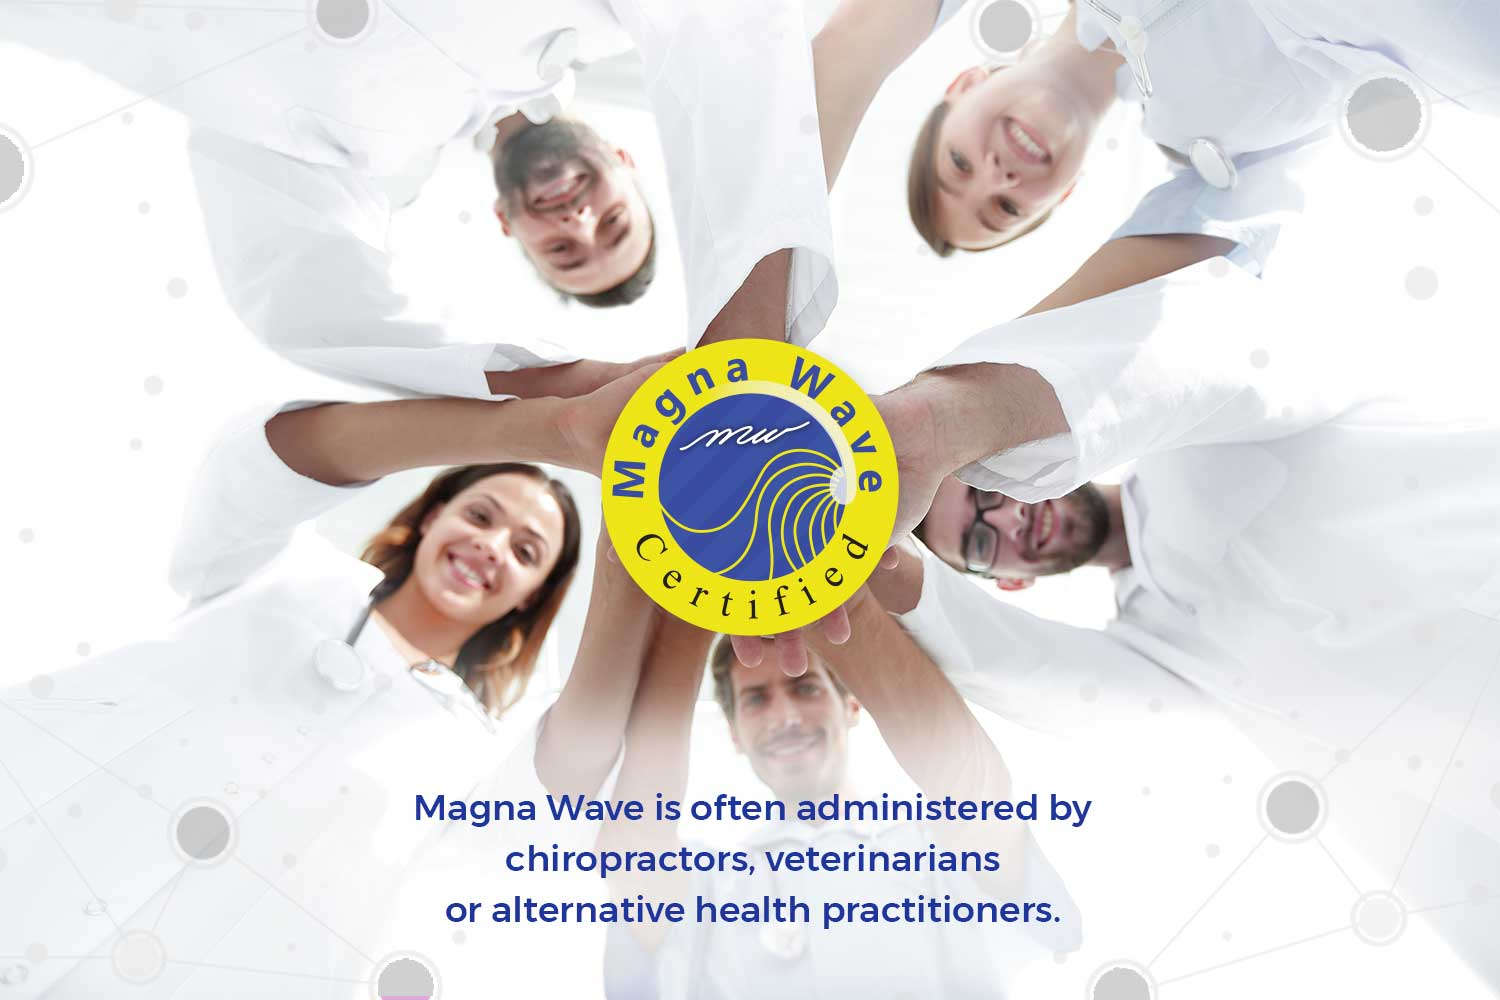 Magna Wave is often administered by chiropractors, veterinarians or alternative health practitioners.